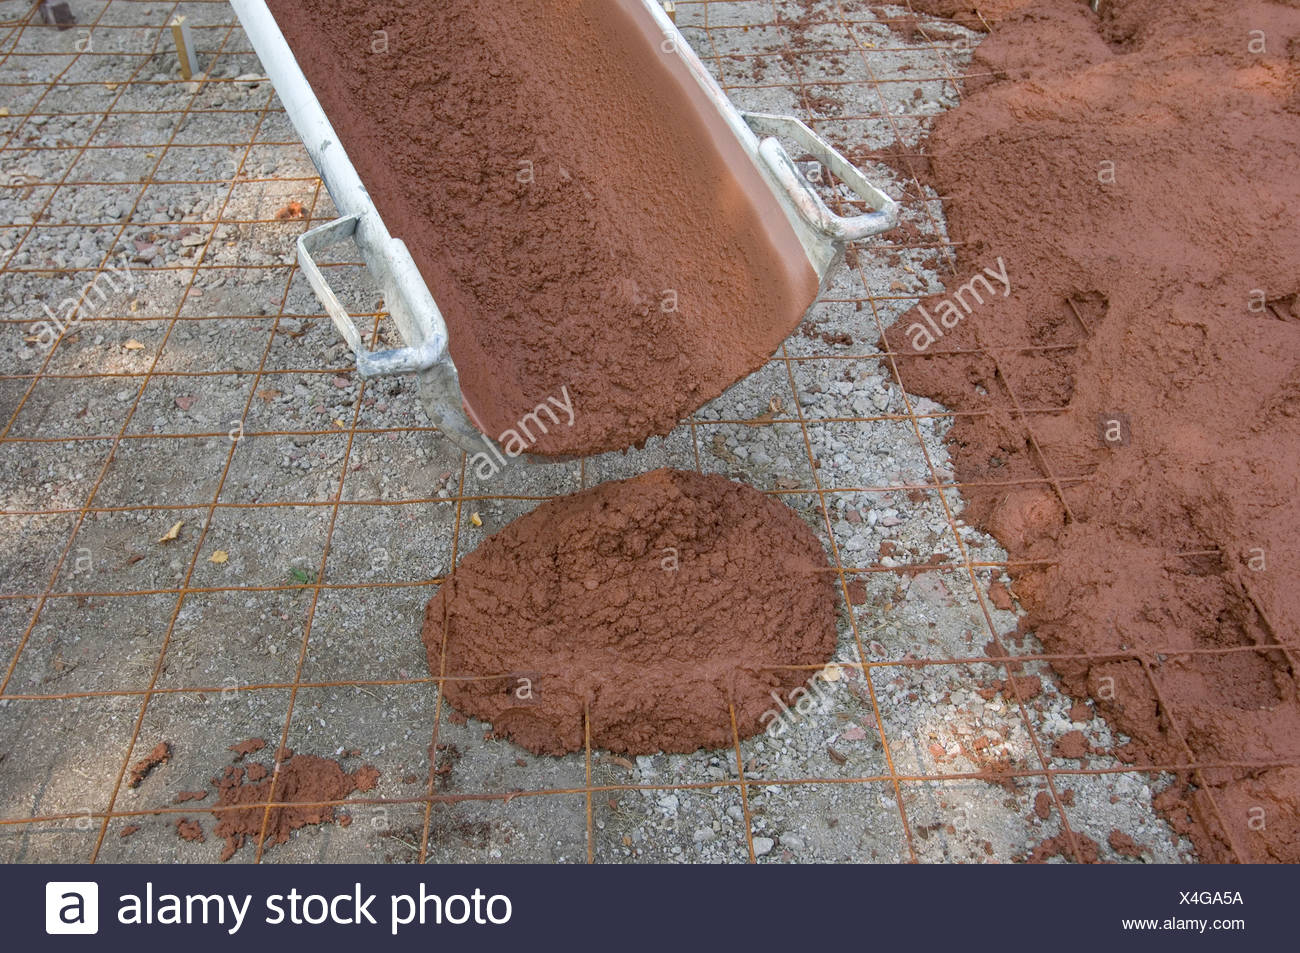 Red-tinted concrete is poured as a new driveway. - Stock Image